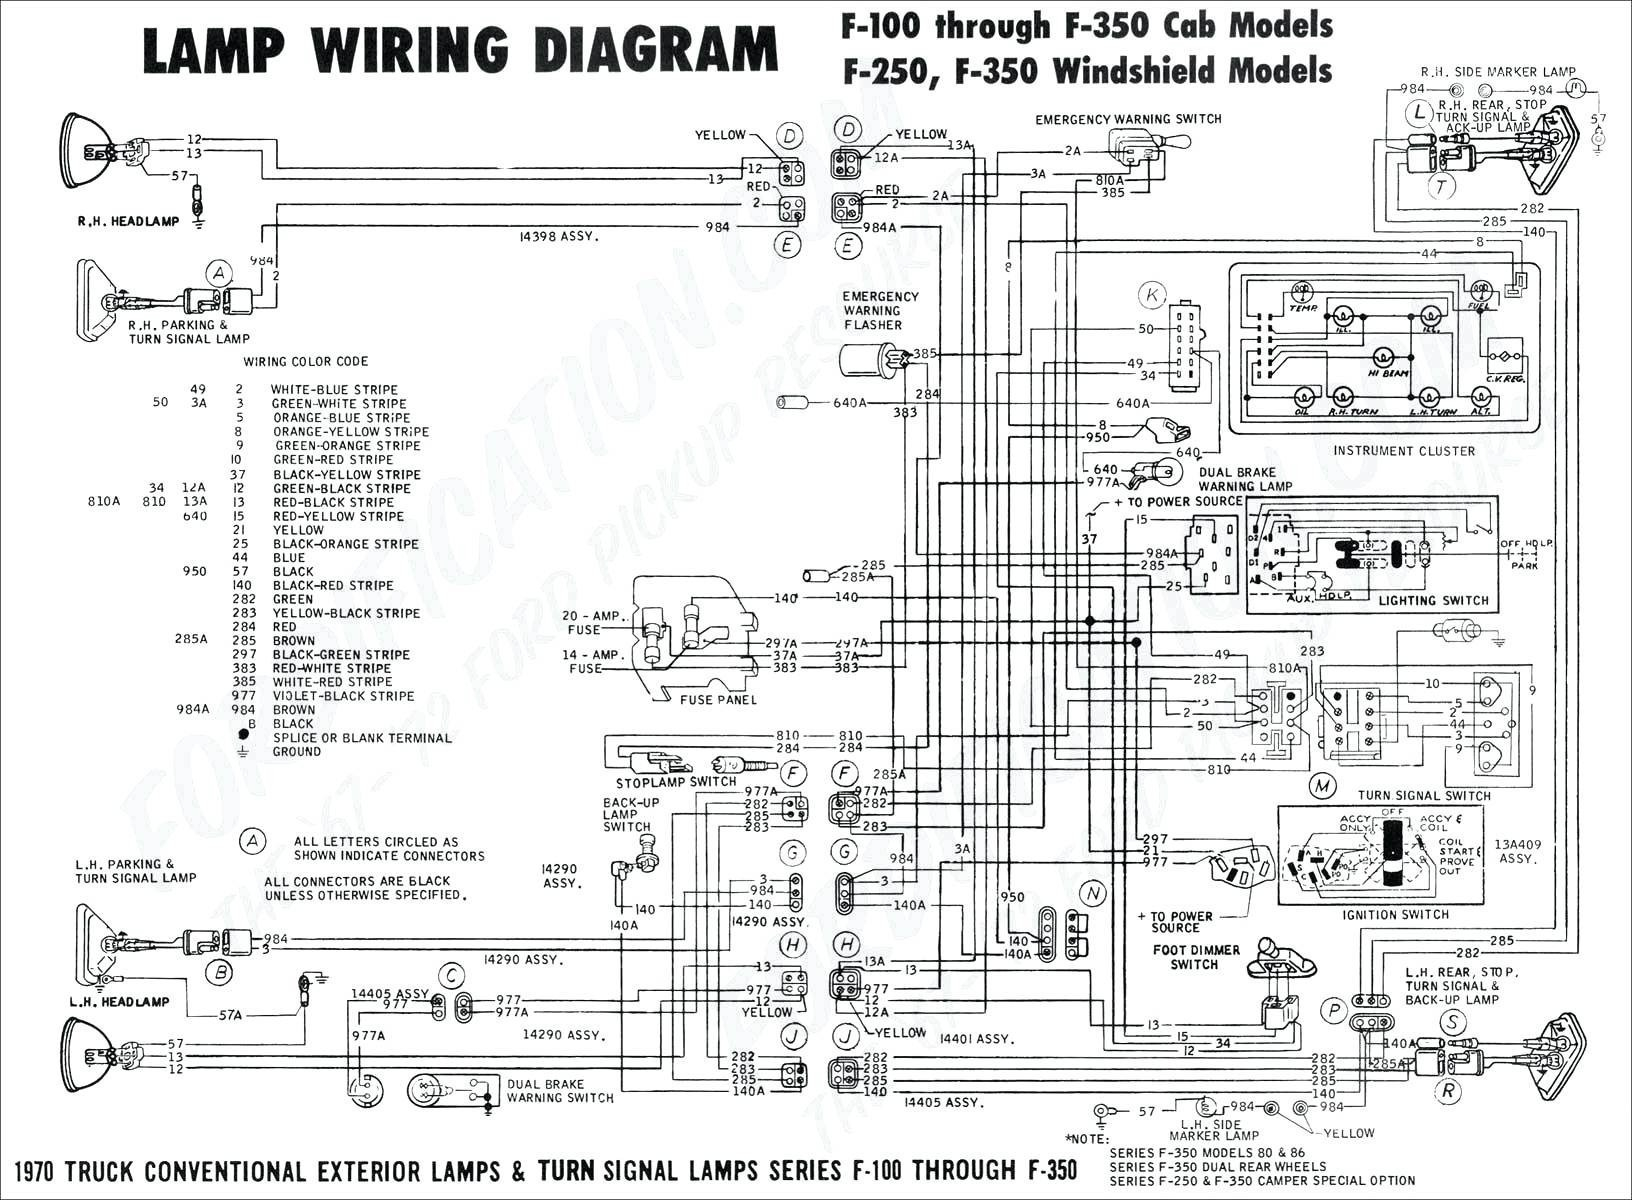 mitsubishi lancer wiring diagram Collection-Wiring Diagram Mitsubishi Lancer New Mitsubishi Trailer Wiring Diagram Fresh Save Coachman Motorhome 11-r